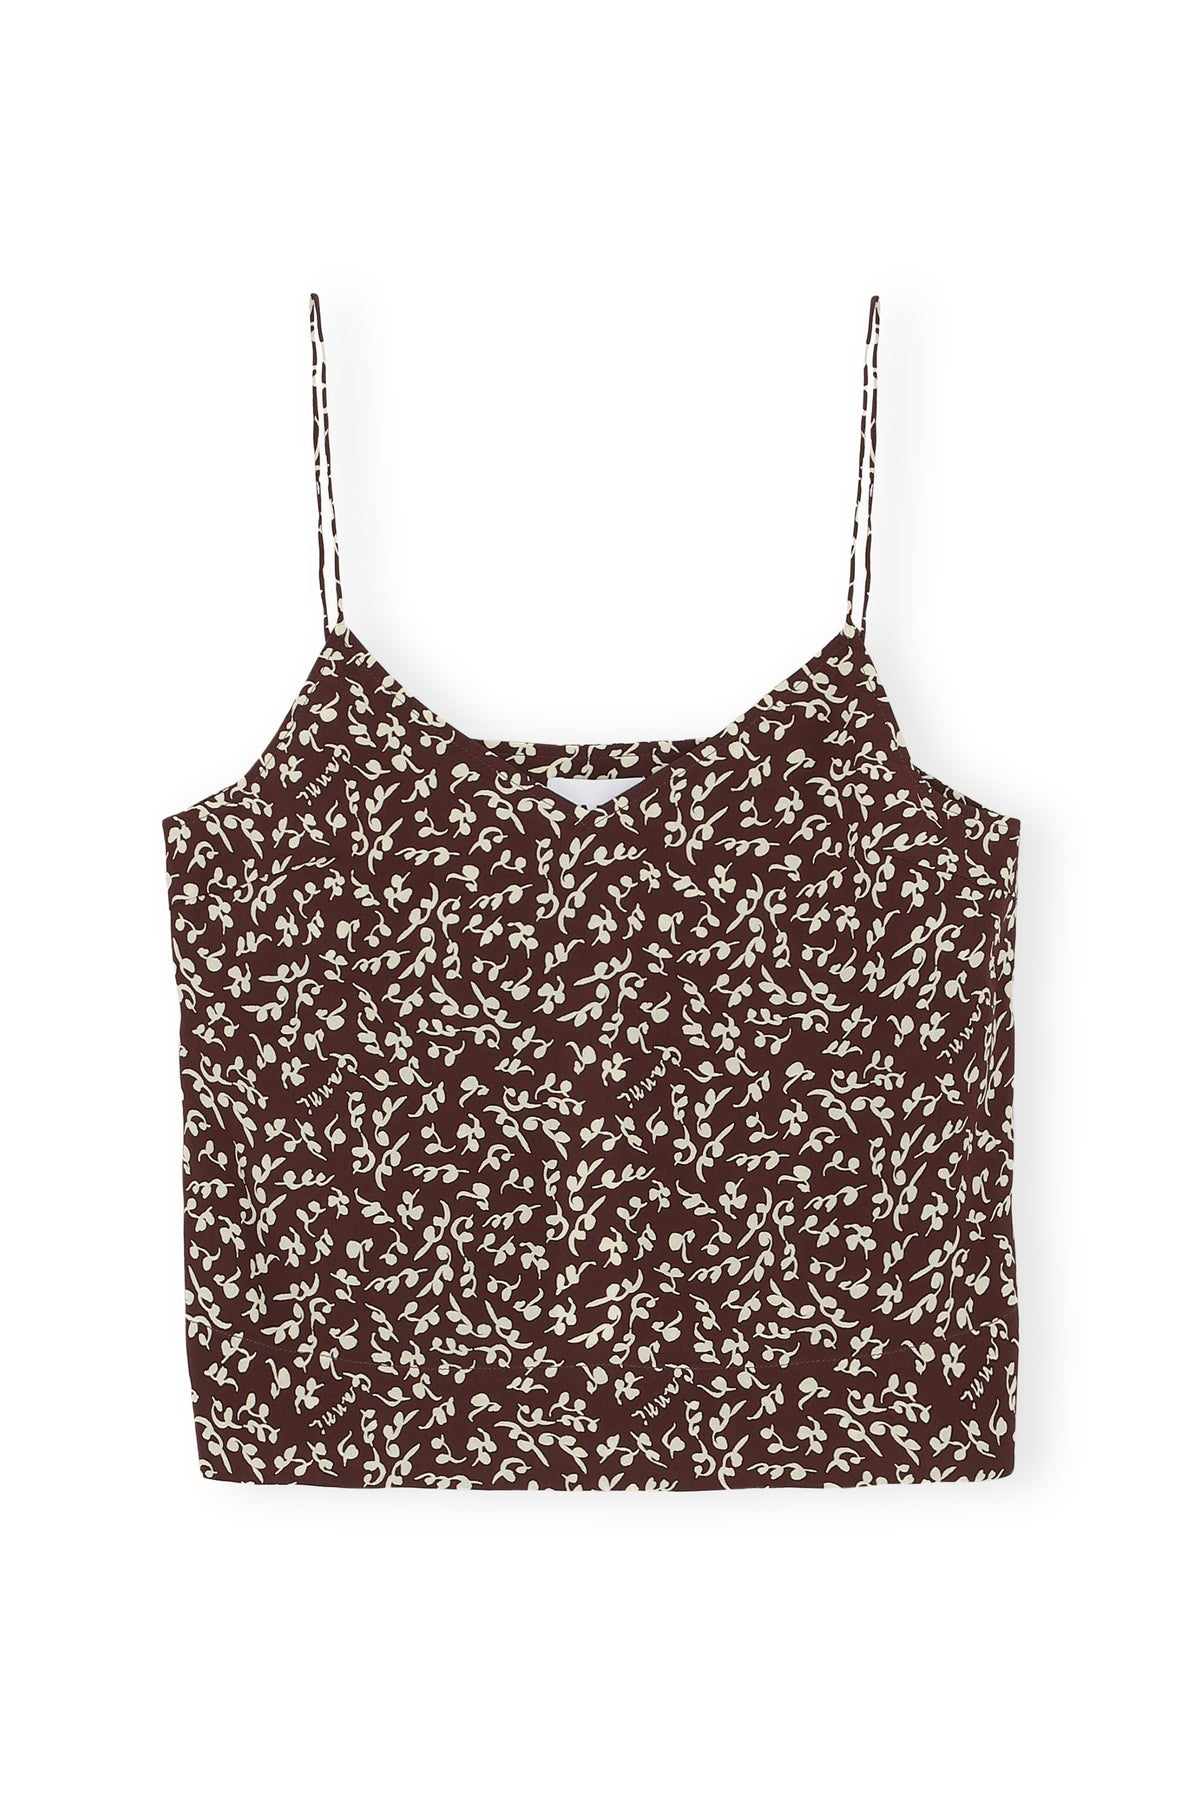 Printed Crepe Cami Top - Decadent Chocolate